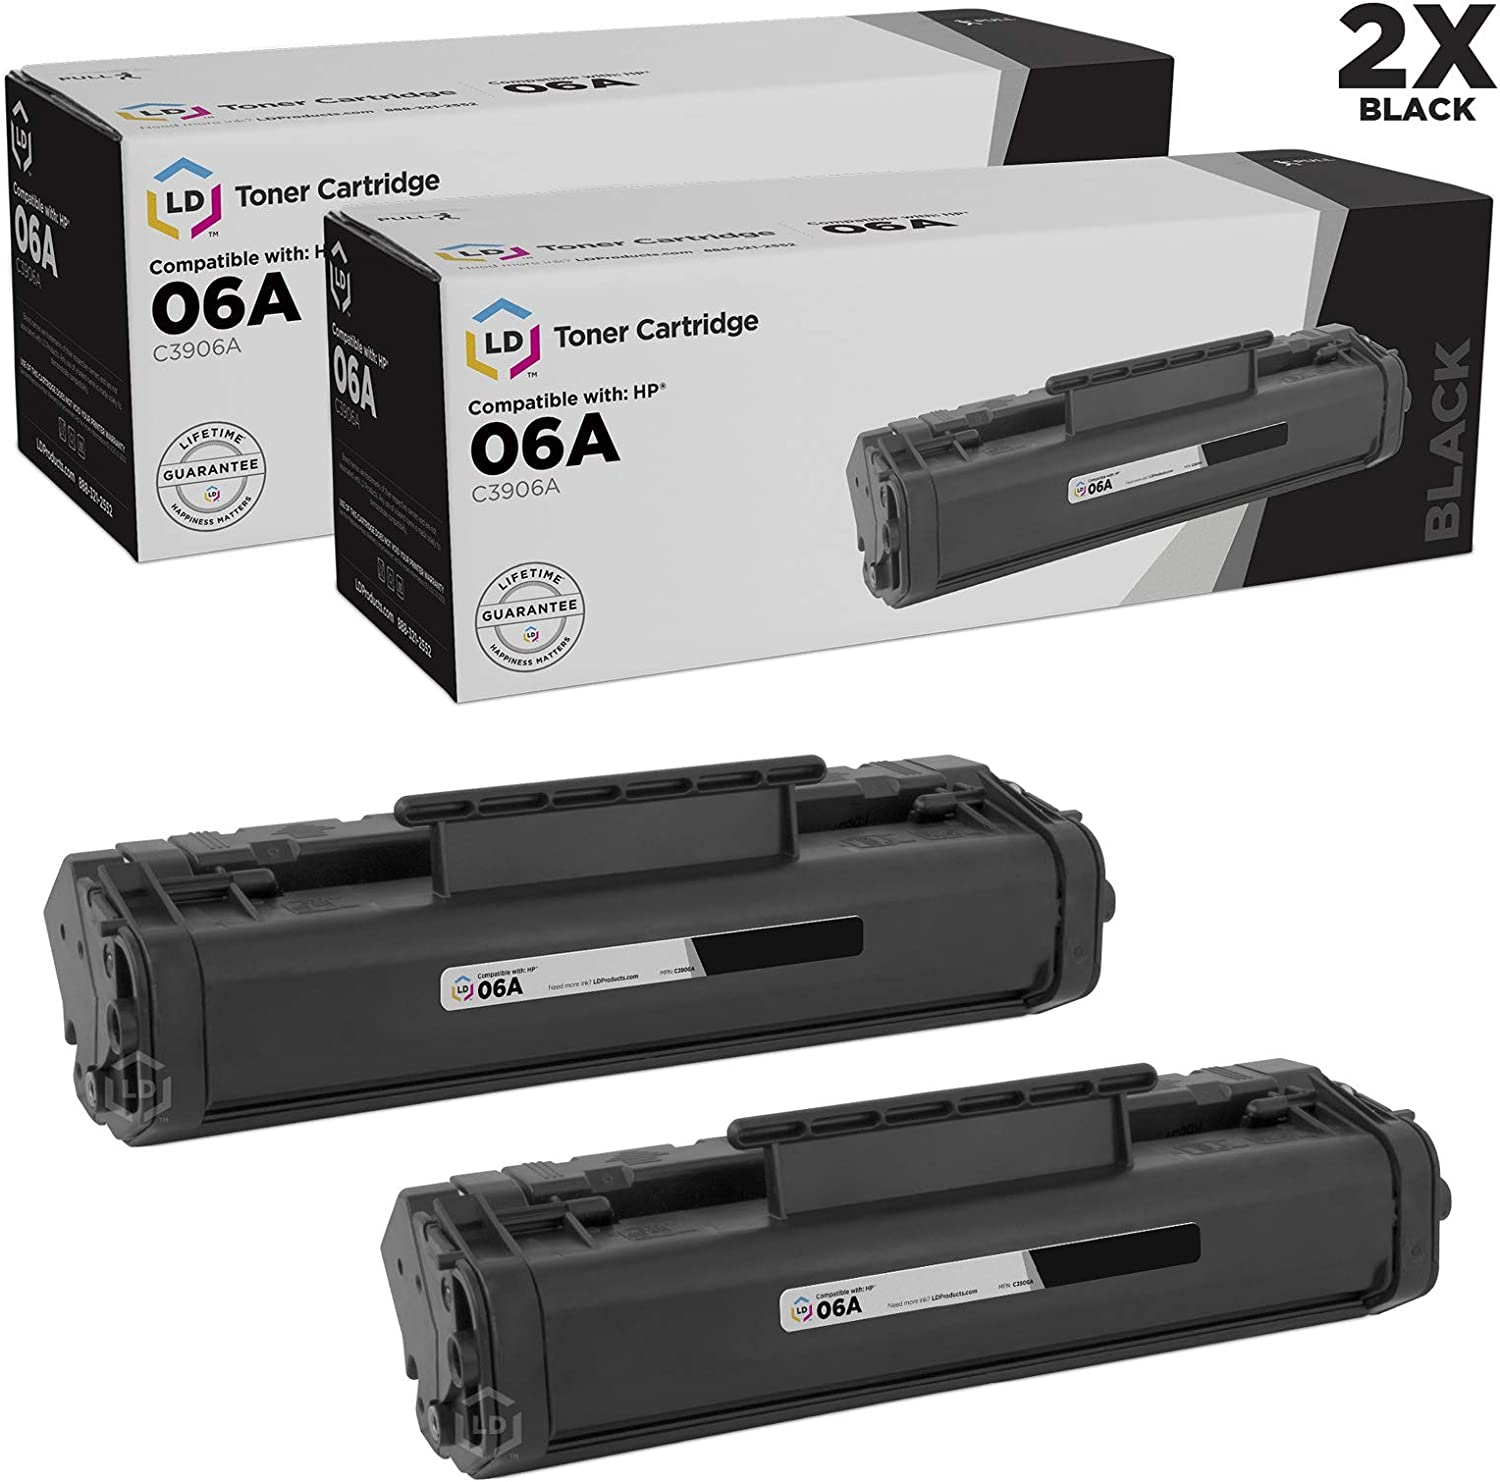 LD Remanufactured Toner Cartridge Replacement for HP 06A C3906A (Black, 2-Pack)